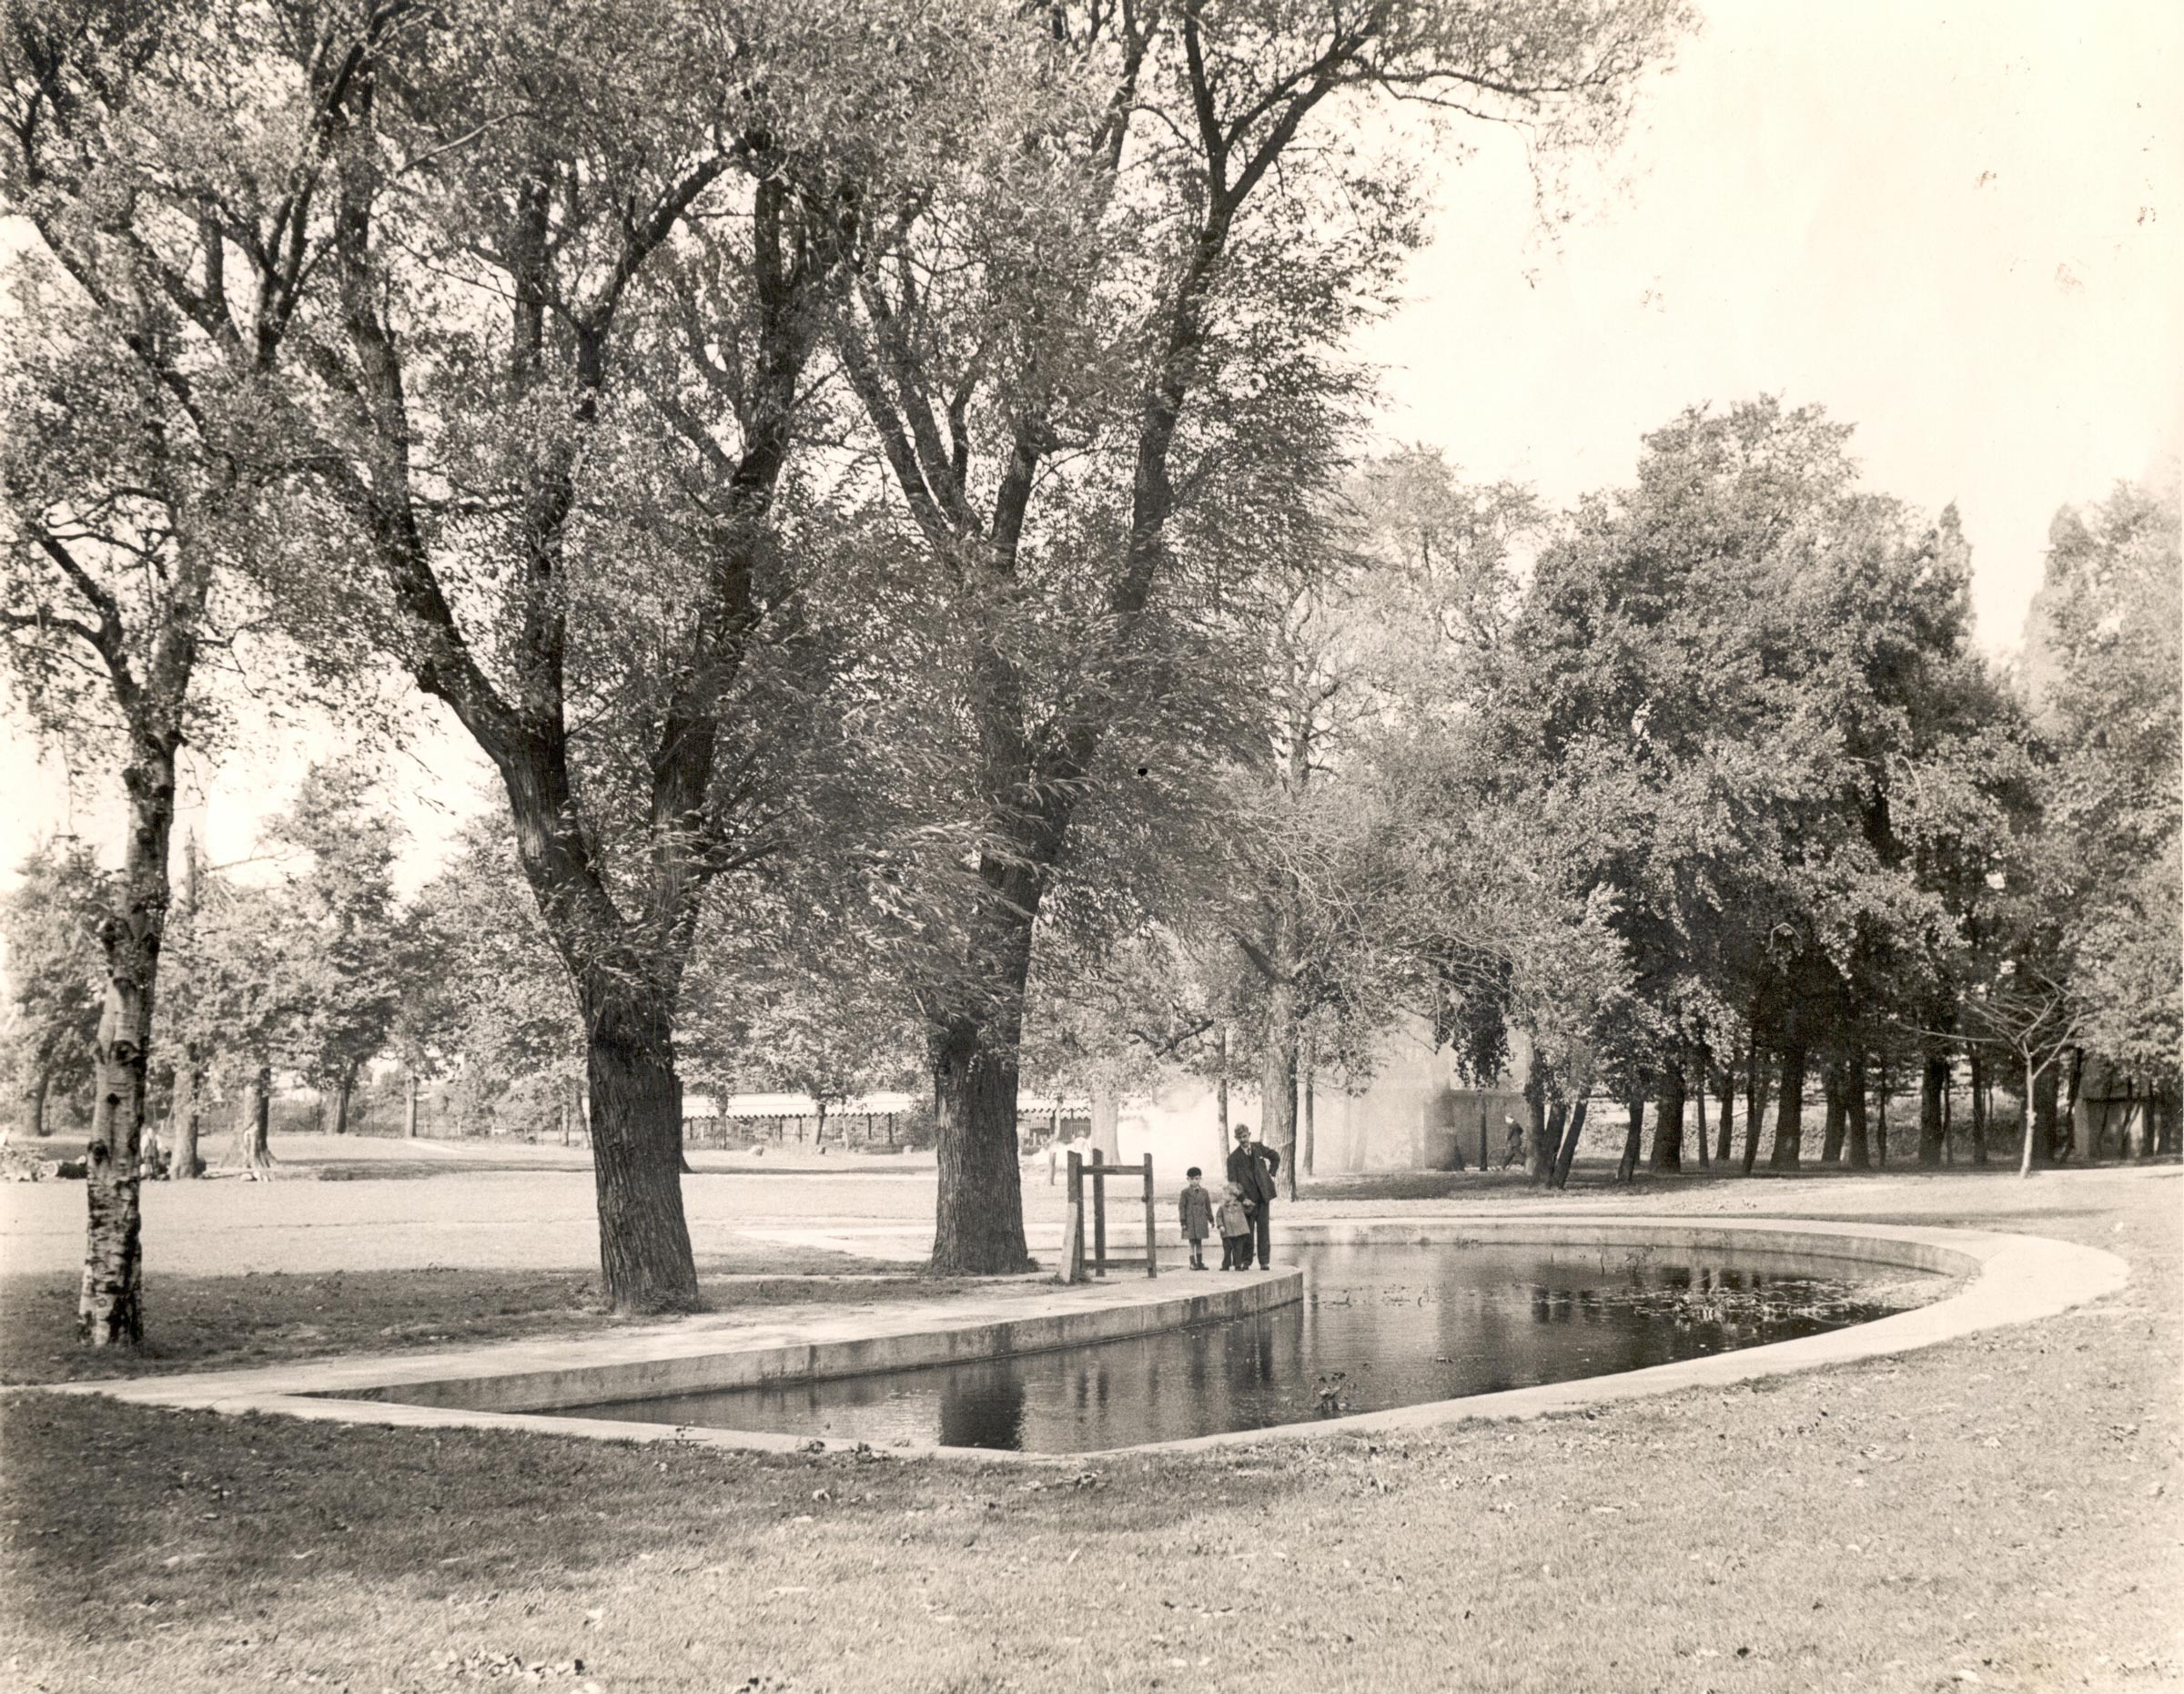 Pond in place of the old lake -1938, Courtesy of Museum of Croydon Collections